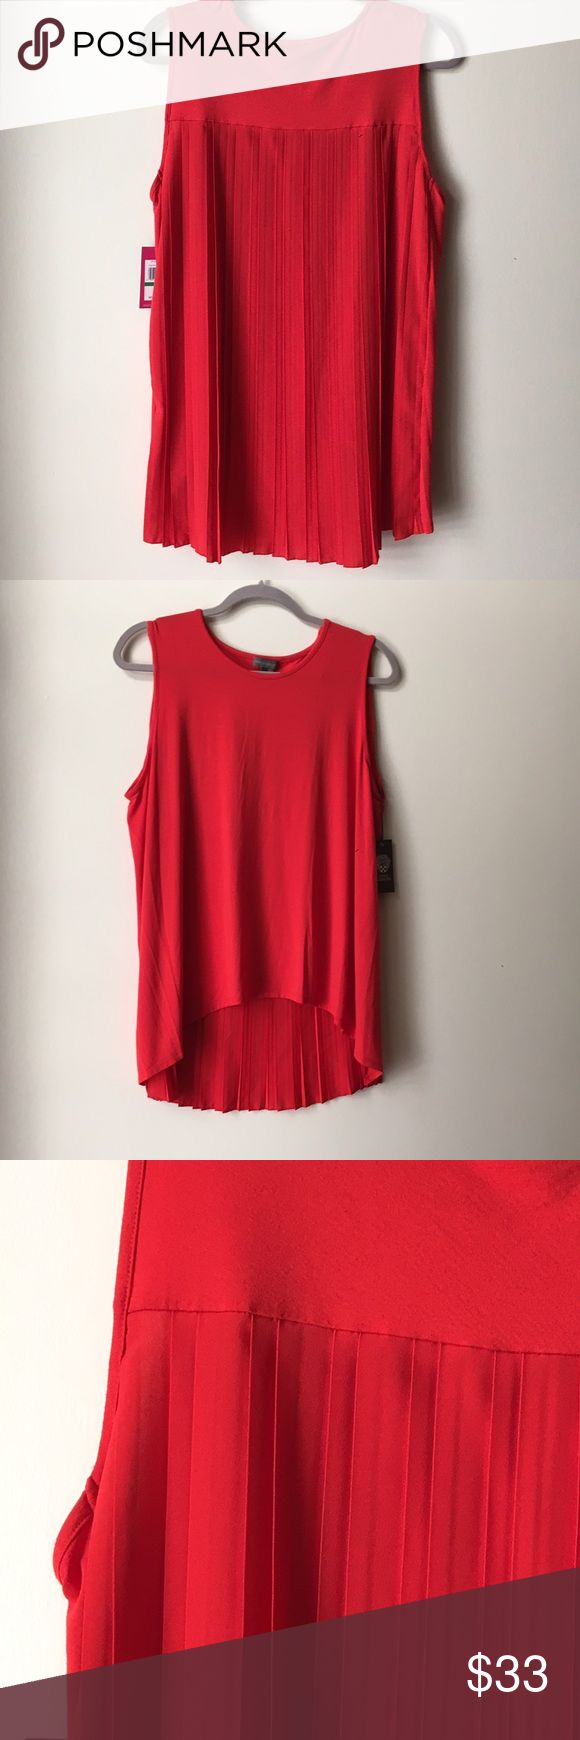 VINCE CAMUTO Pleat-Back Hi/Lo Tunic Tank (M) *NWT* A bright red tunic top is fashioned with a smooth stretch-knit fabric on front and silky pleats that drape from back yoke to high-low hemline. By Vince Camuto.  SIZE:  Medium COLOR:  Pepper (Red)    - Jersey & Crepe-like mixed fabrication   - Sleeveless   - Scoop neck   - Pleated-back panel   - High-Low hem   - Imported  CONTENT:  Body: 96% Rayon, 4% Spandex. Combo: 100% Polyester.    CARE:  Machine wash cold, tumble dry low.   *** NEW WITH…